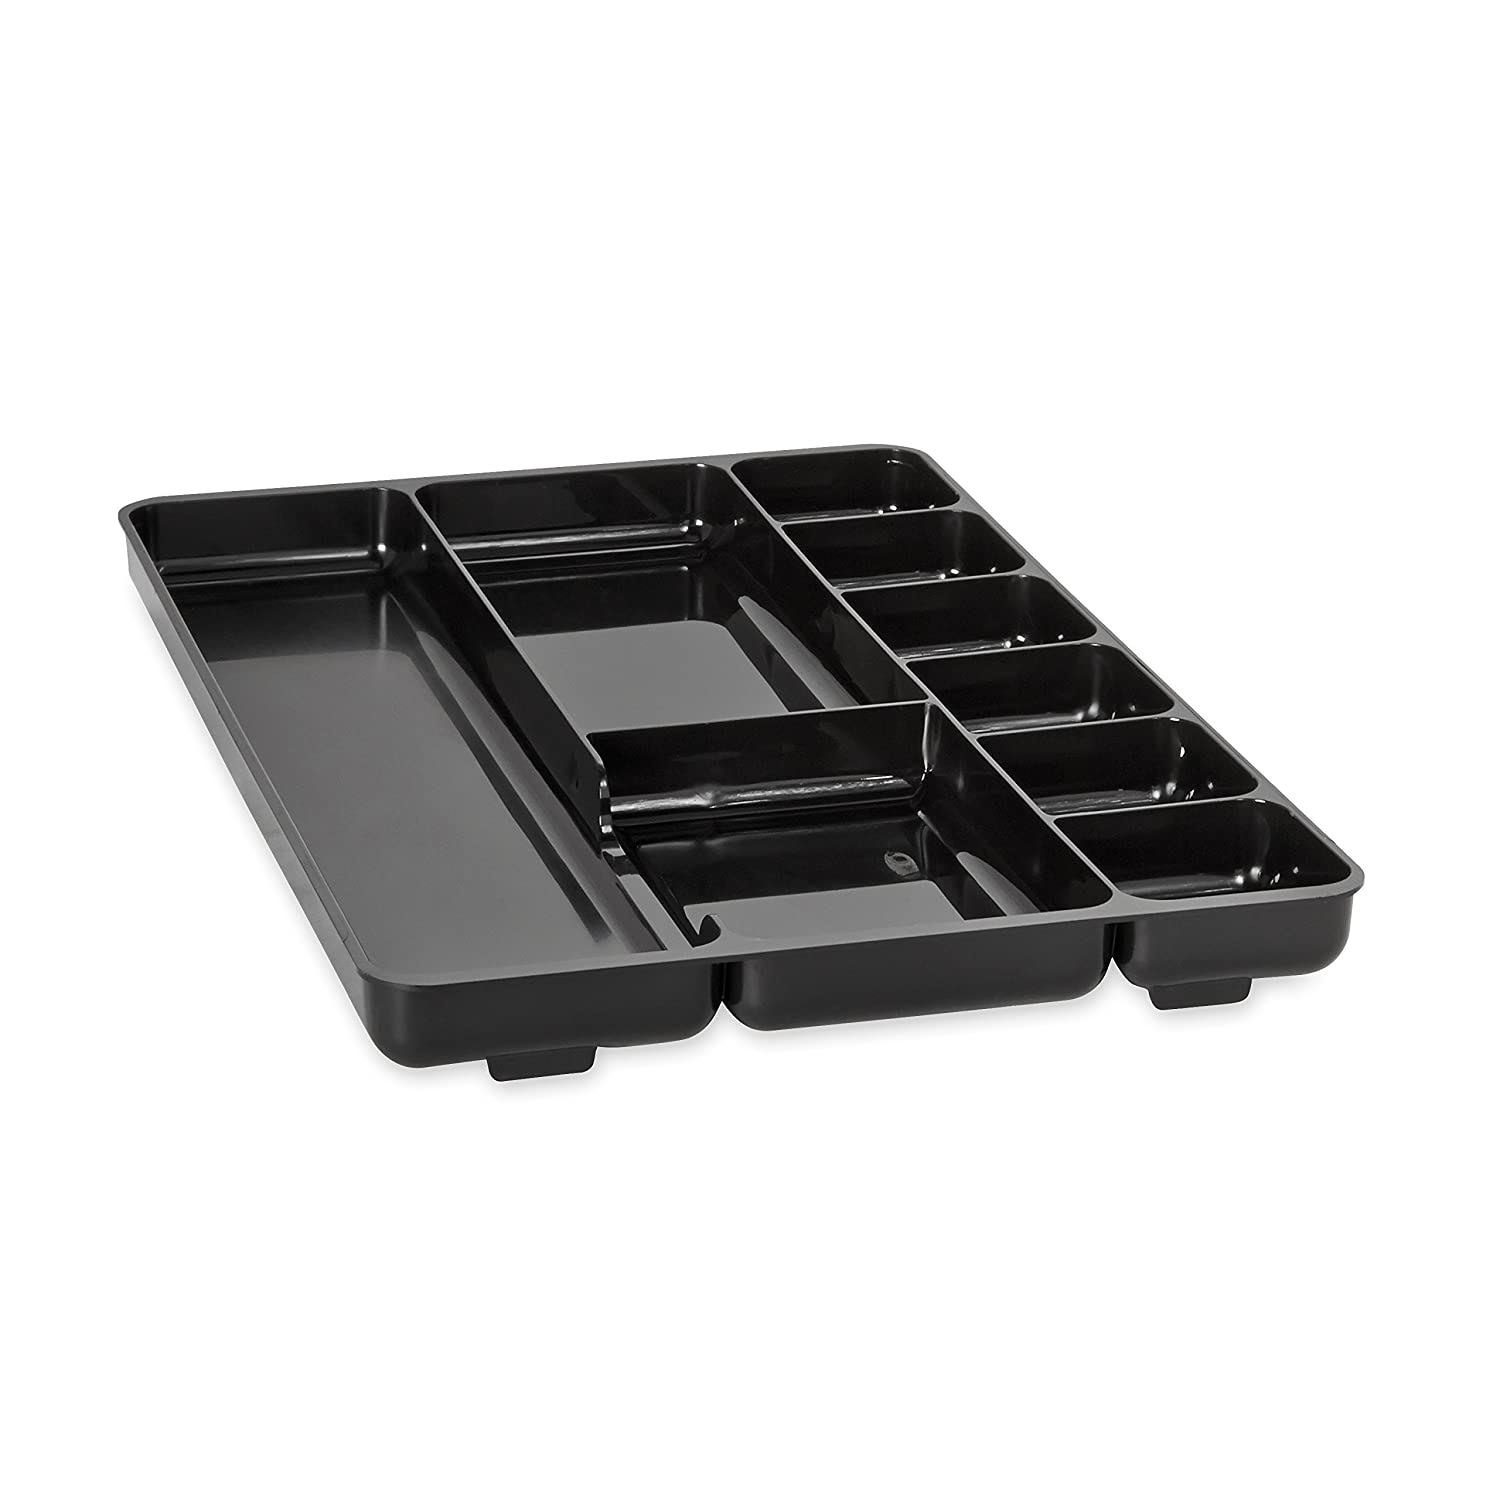 Uncategorized Pencil Drawer Organizer drawer organizers amazon com office school supplies desk rubbermaid regeneration 9 section organizer plastic 14 x 125 1 inches black 45706